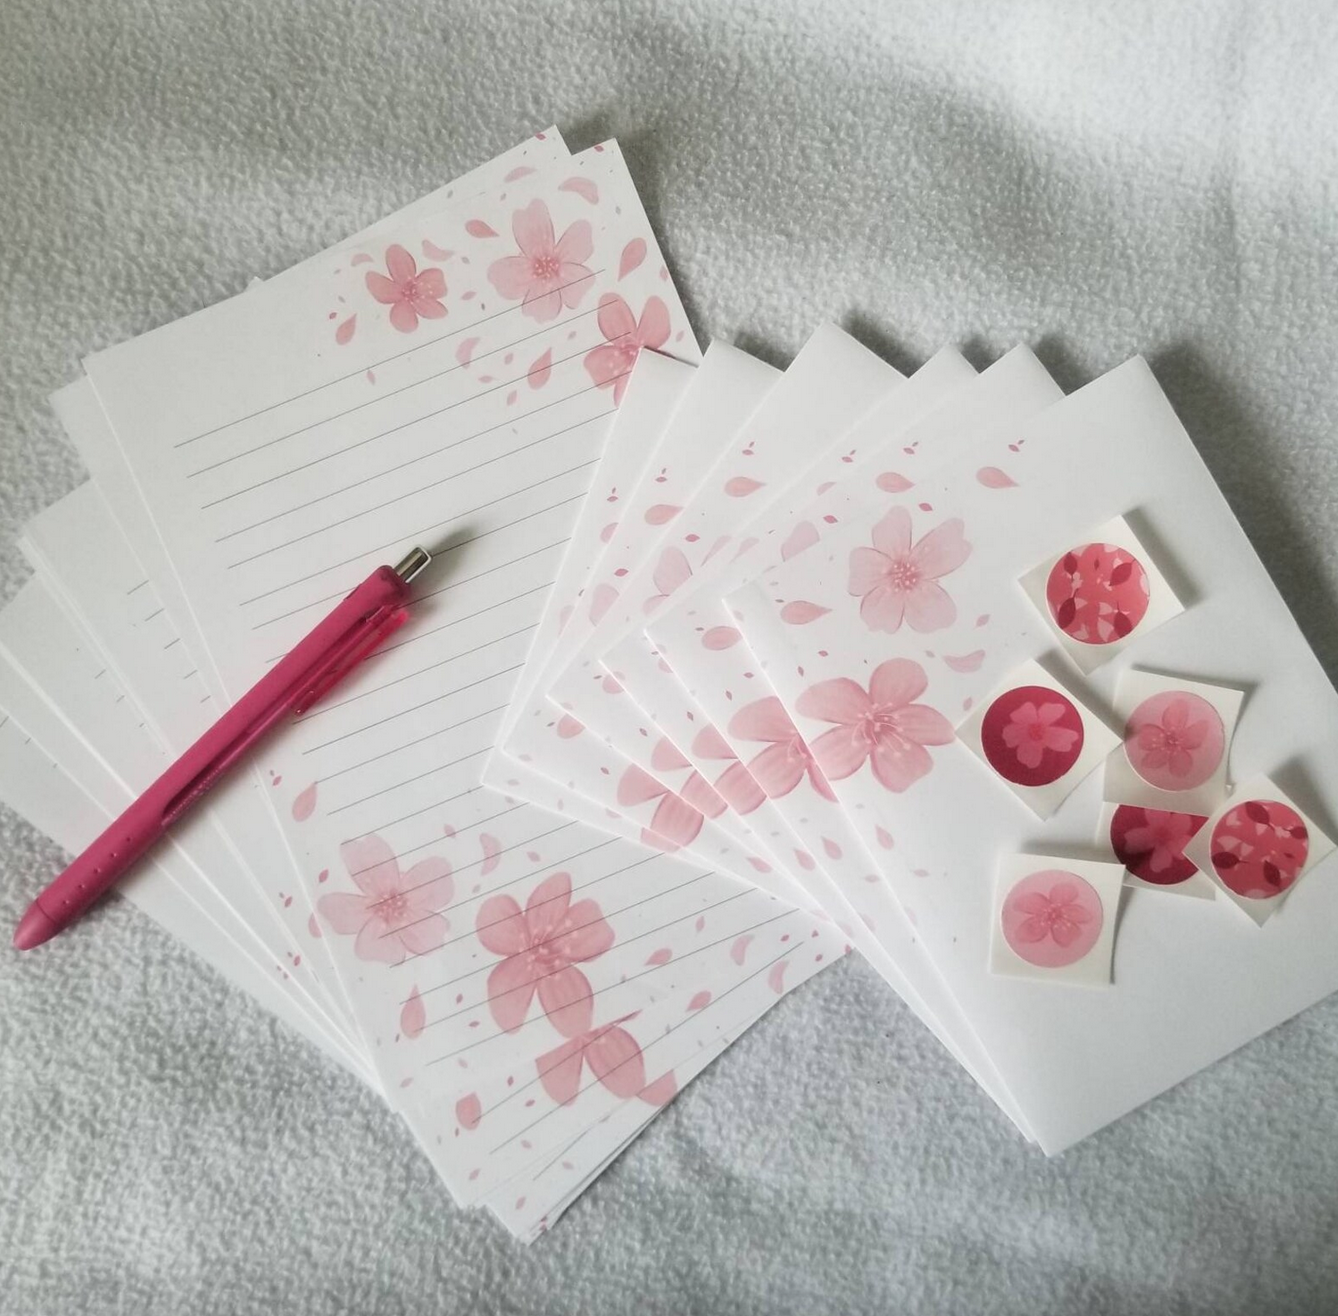 Cherry blossom stationary set with pink pen